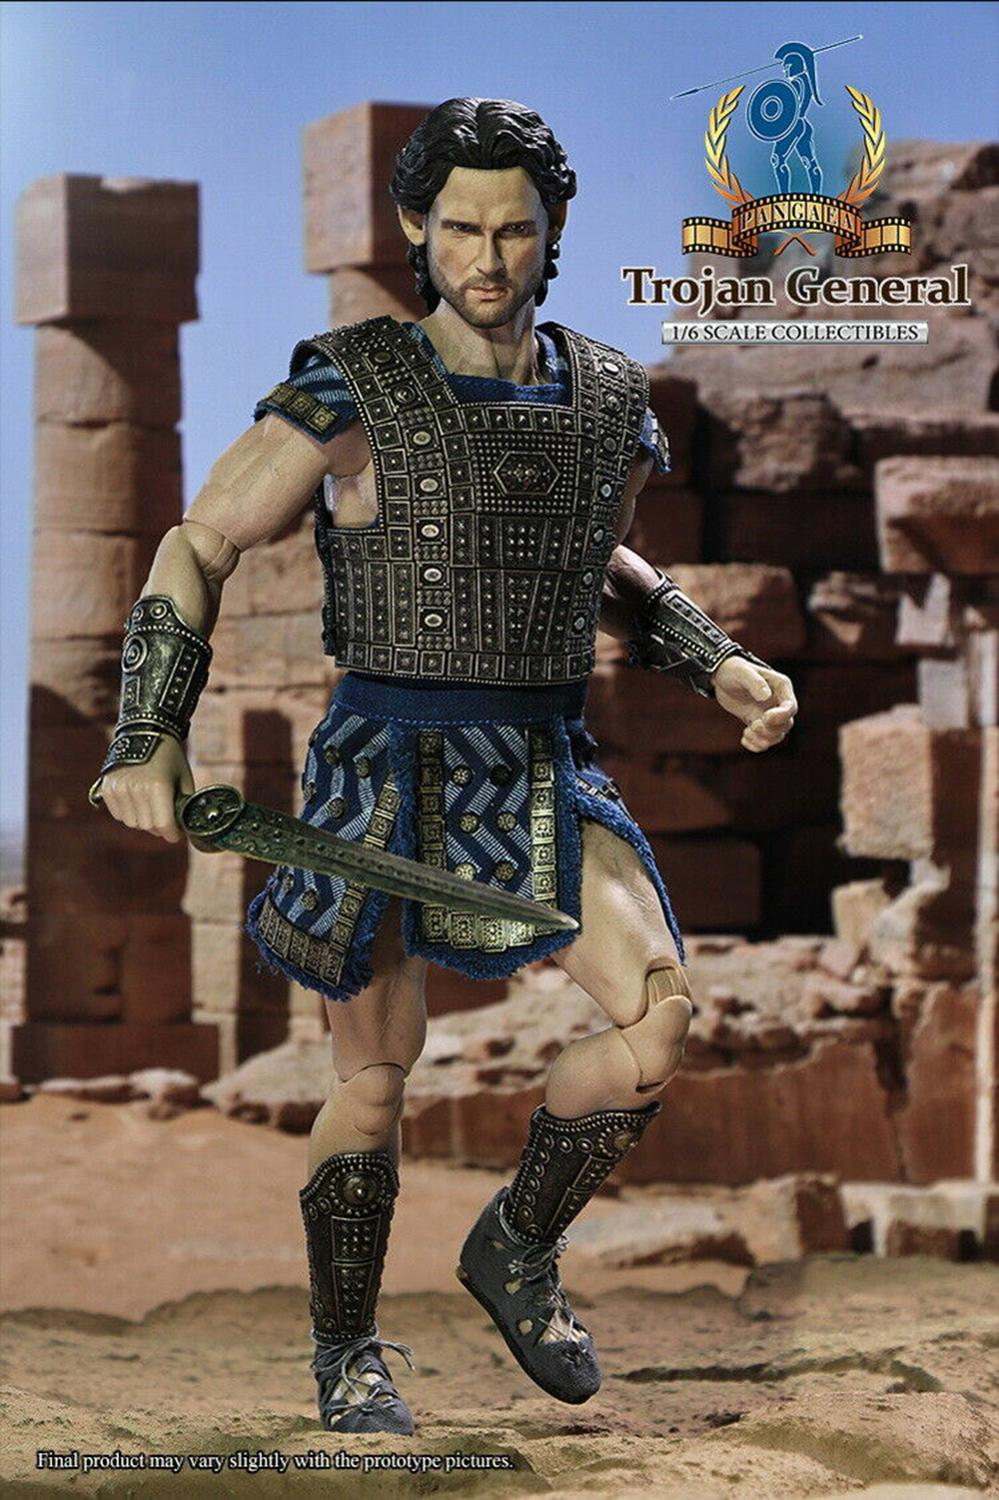 Full set 1/6 Scale PangaeaToy PG-03 TROJAN GENERAL Soldier Figure 12inches For Collectible Gift Dolls TOYSDAO TD-03 figure doll 1